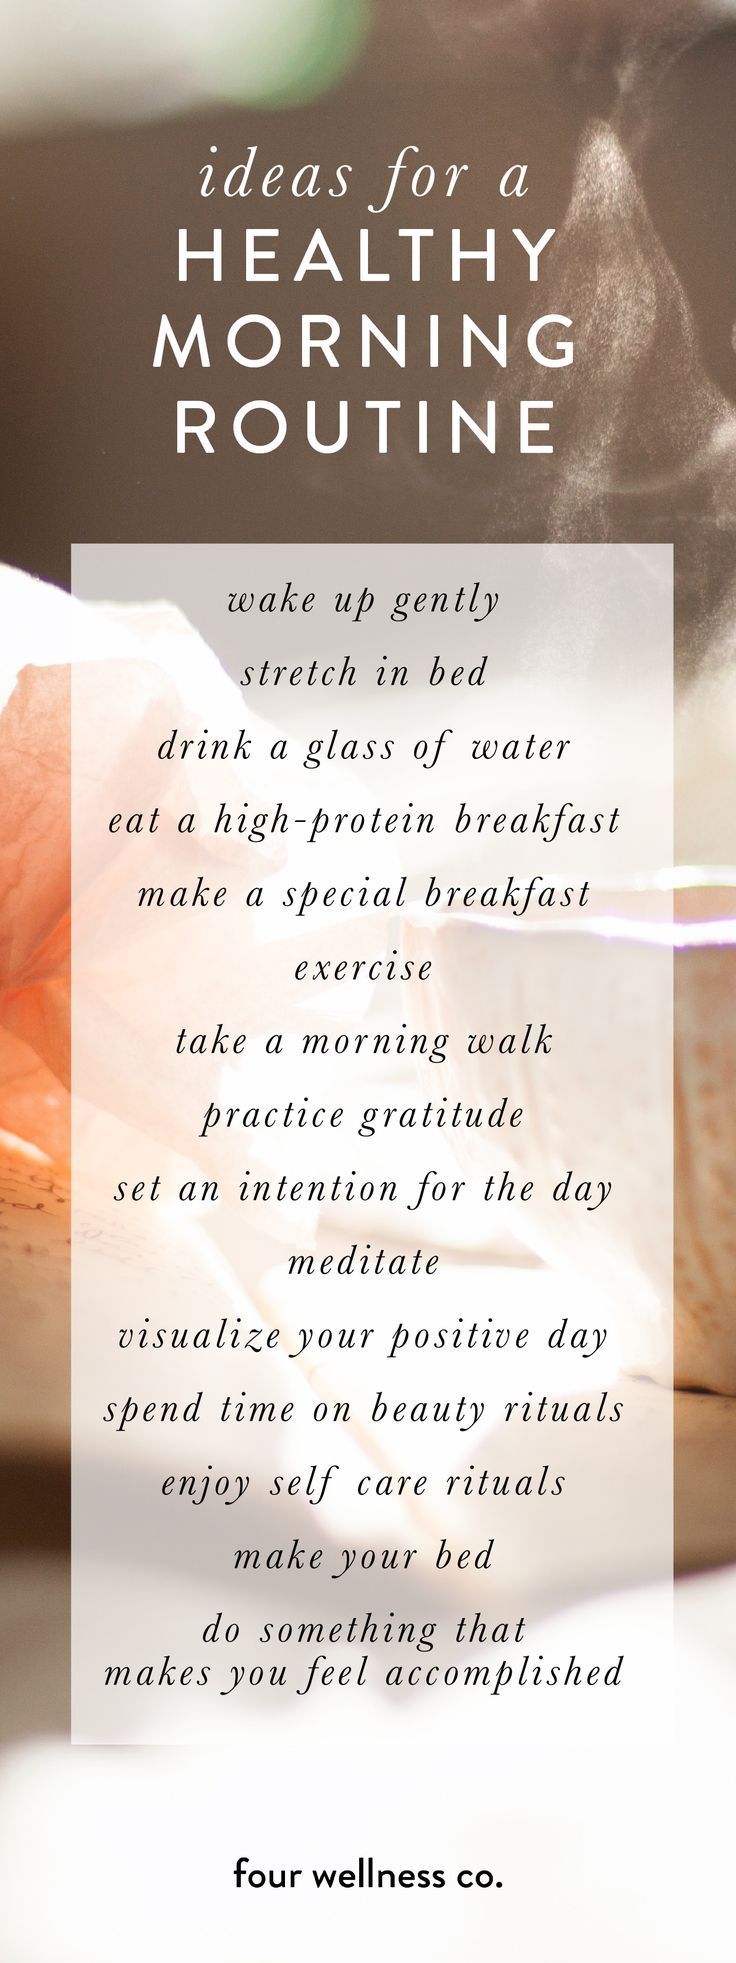 Start Your Day with a Healthy Morning Routine - #Day #Healthy #Morning #routine #Start #healthyliving